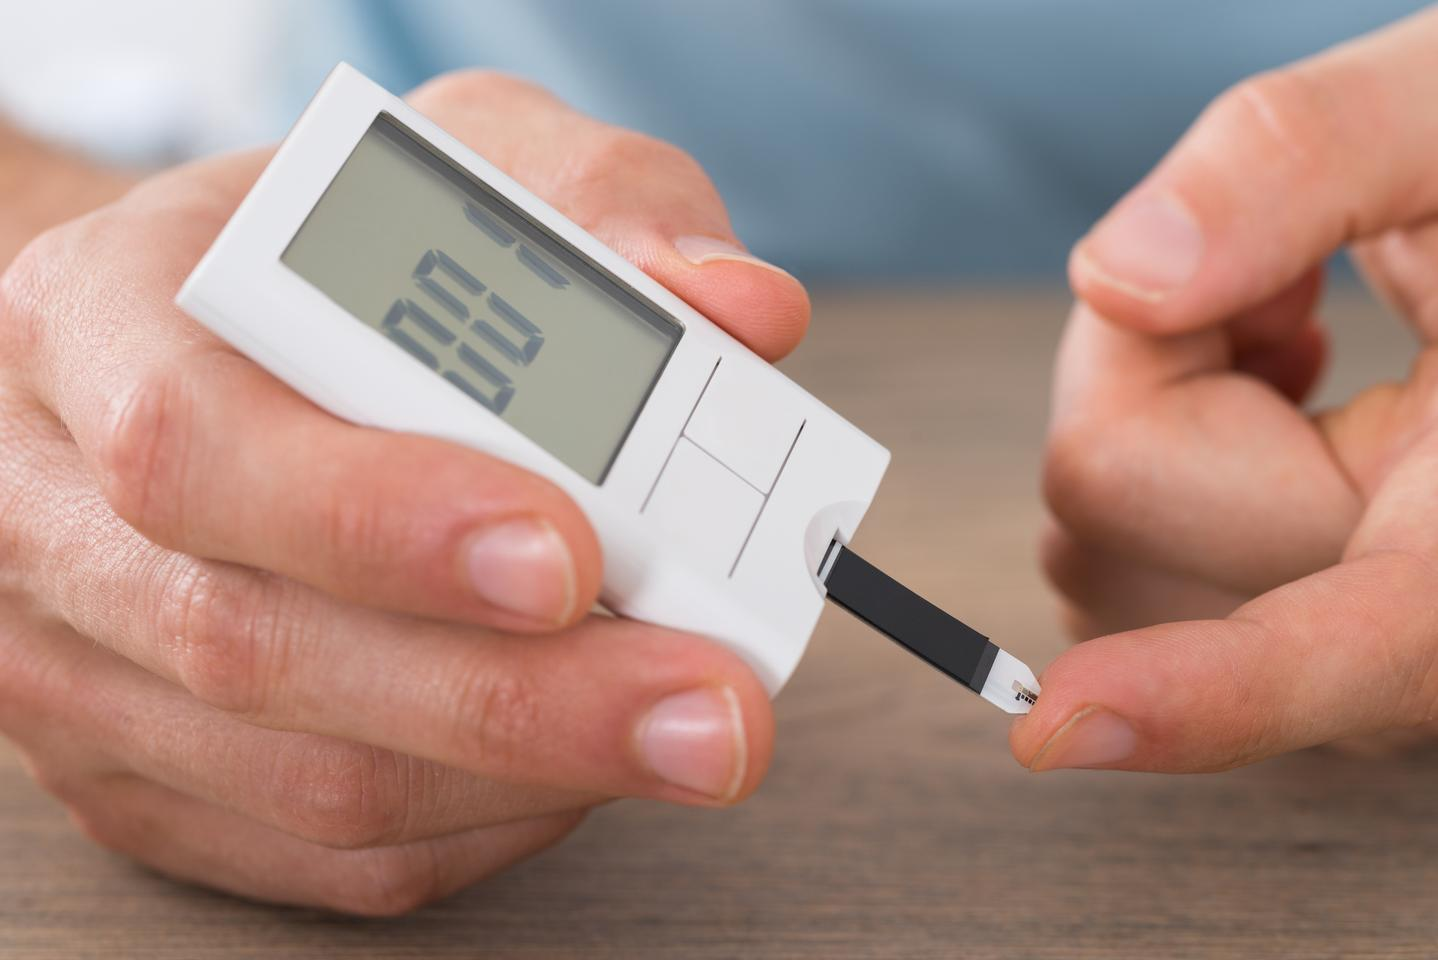 New research may explain how Type 2 diabetes first begins